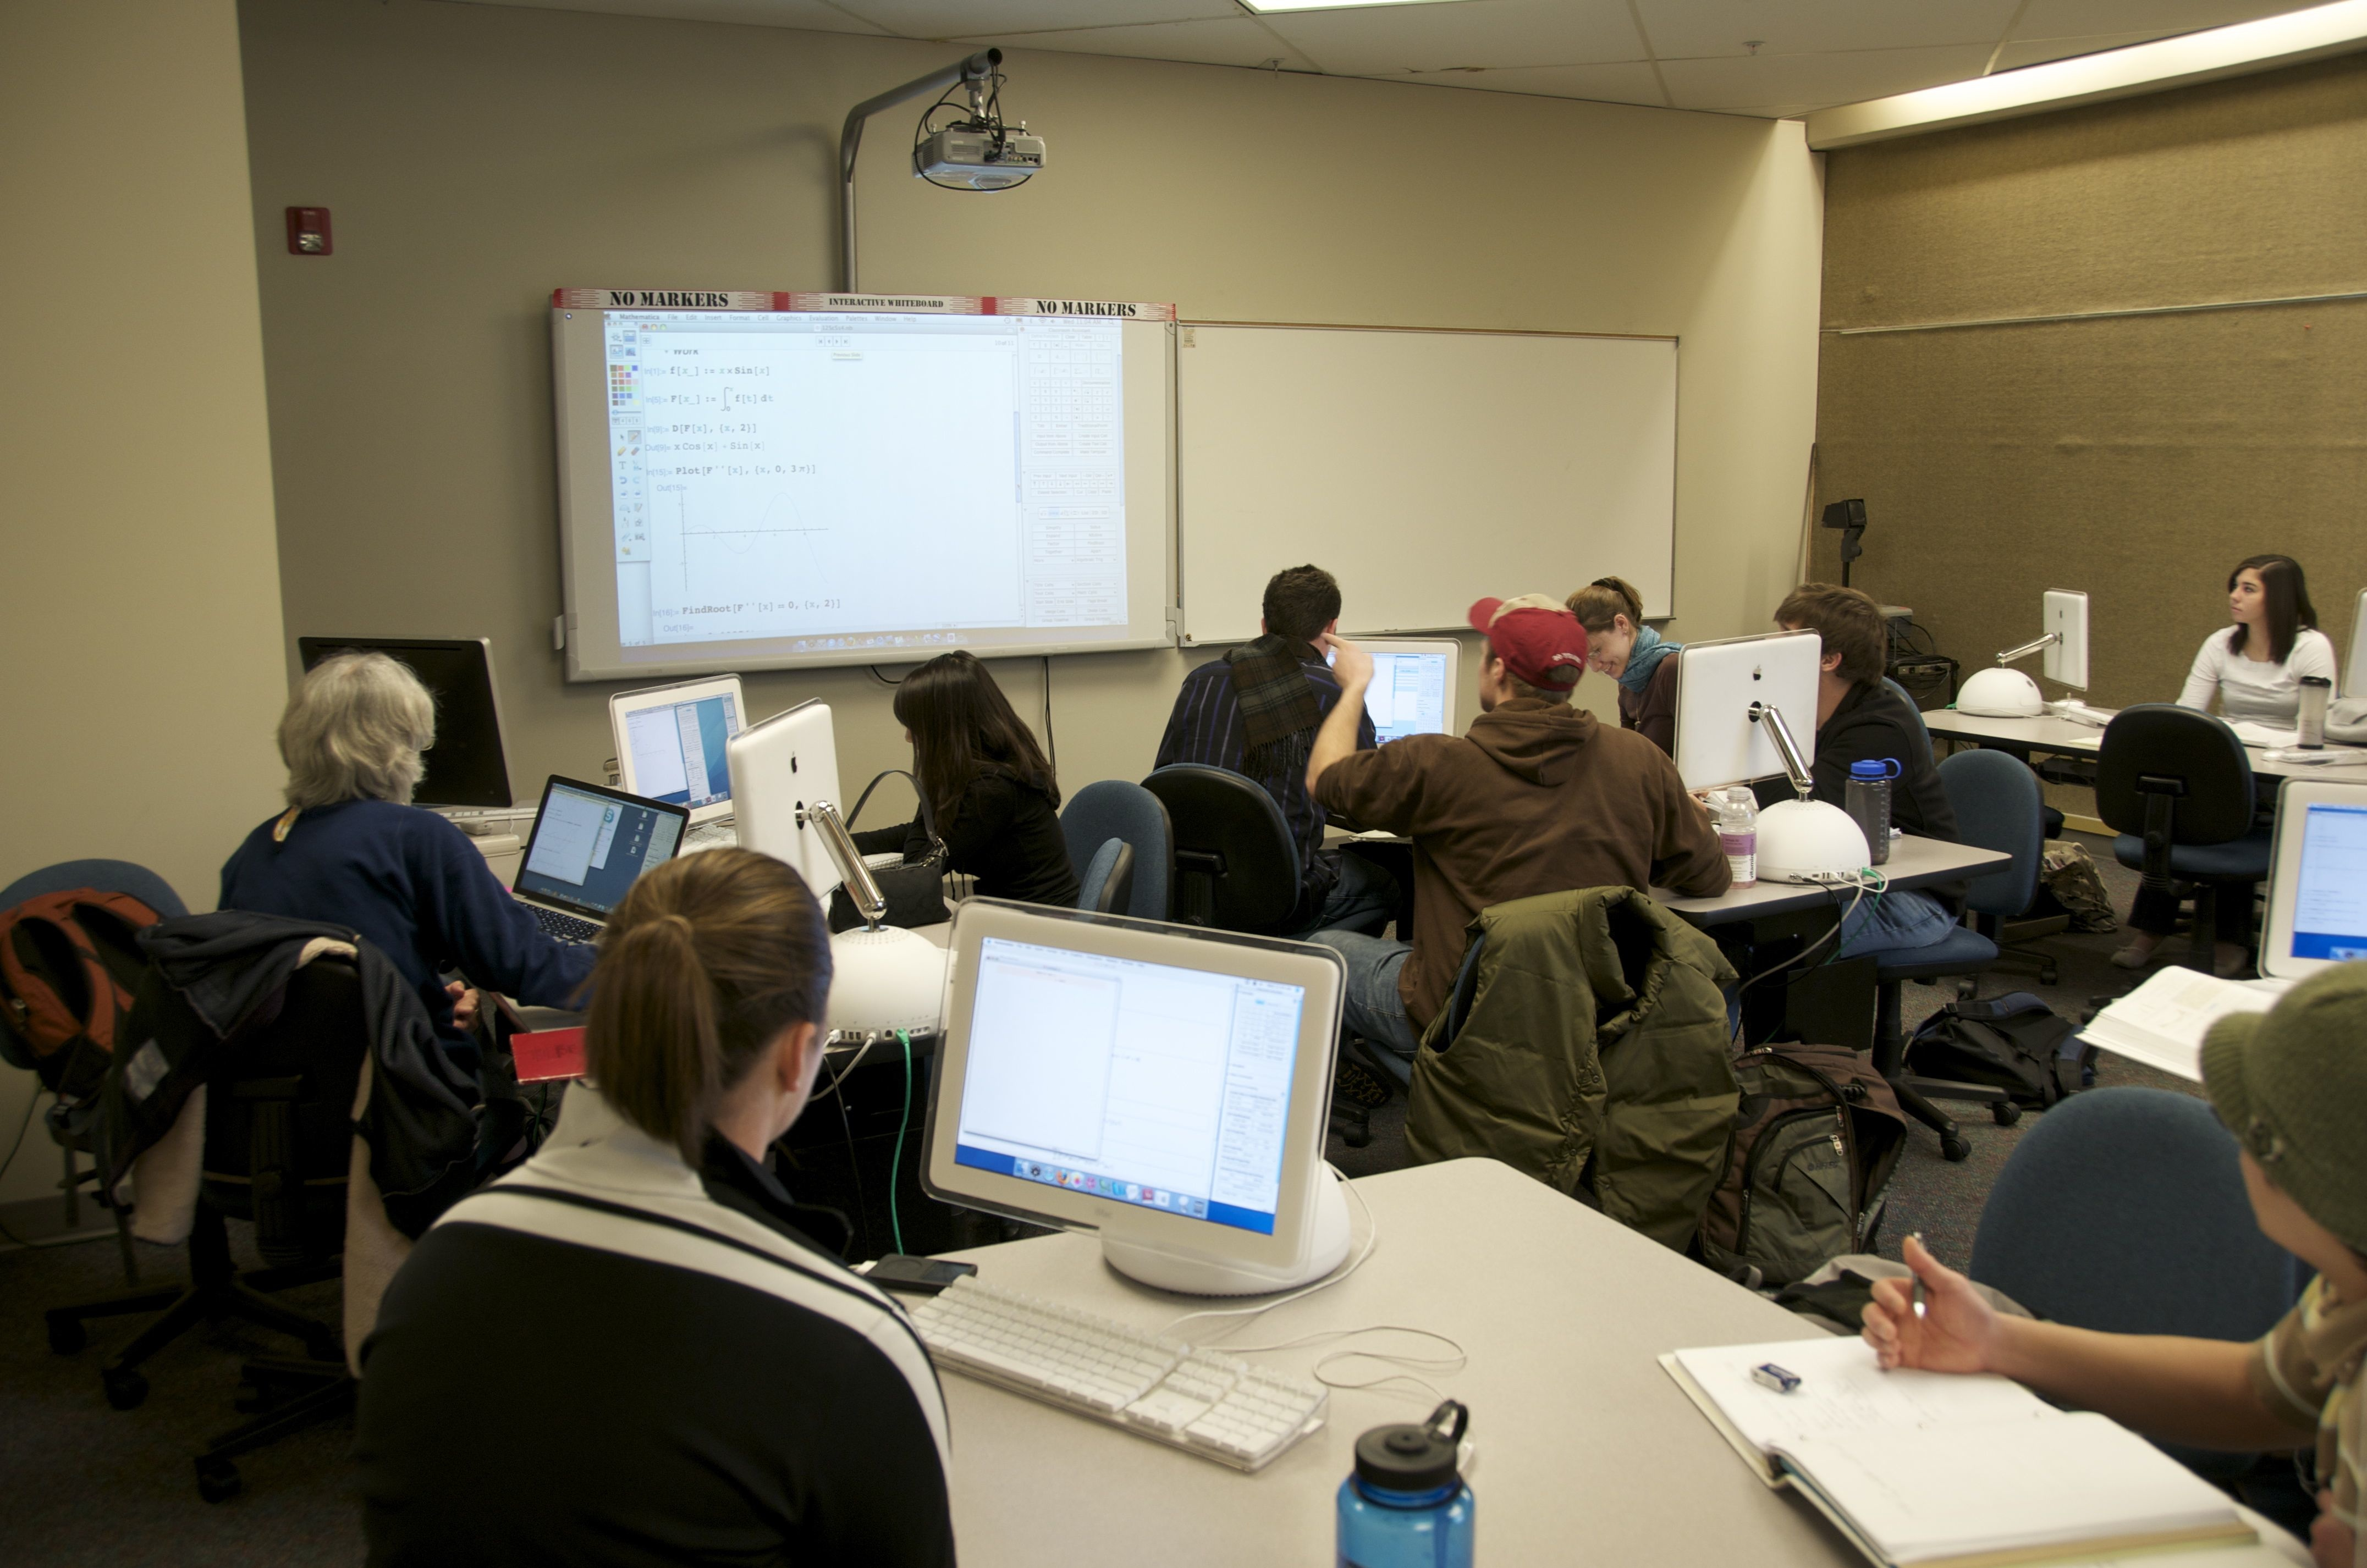 Using Mathematica in a classroom